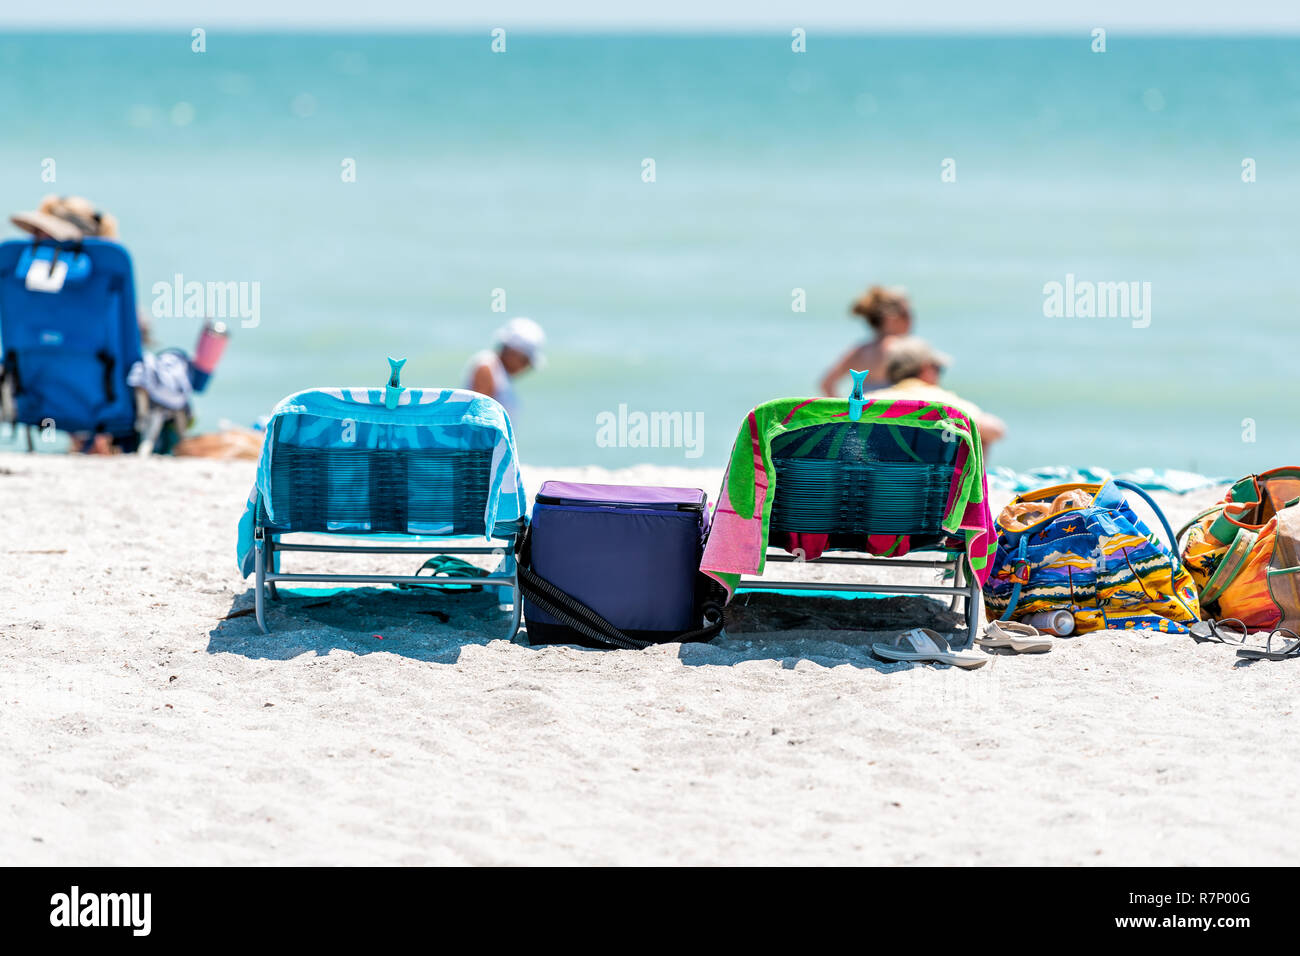 Sanibel Island, USA - April 29, 2018: Bowman's beach with white sand, empty beach chairs, colorful towels, slippers, flip flops, people walking in bac Stock Photo